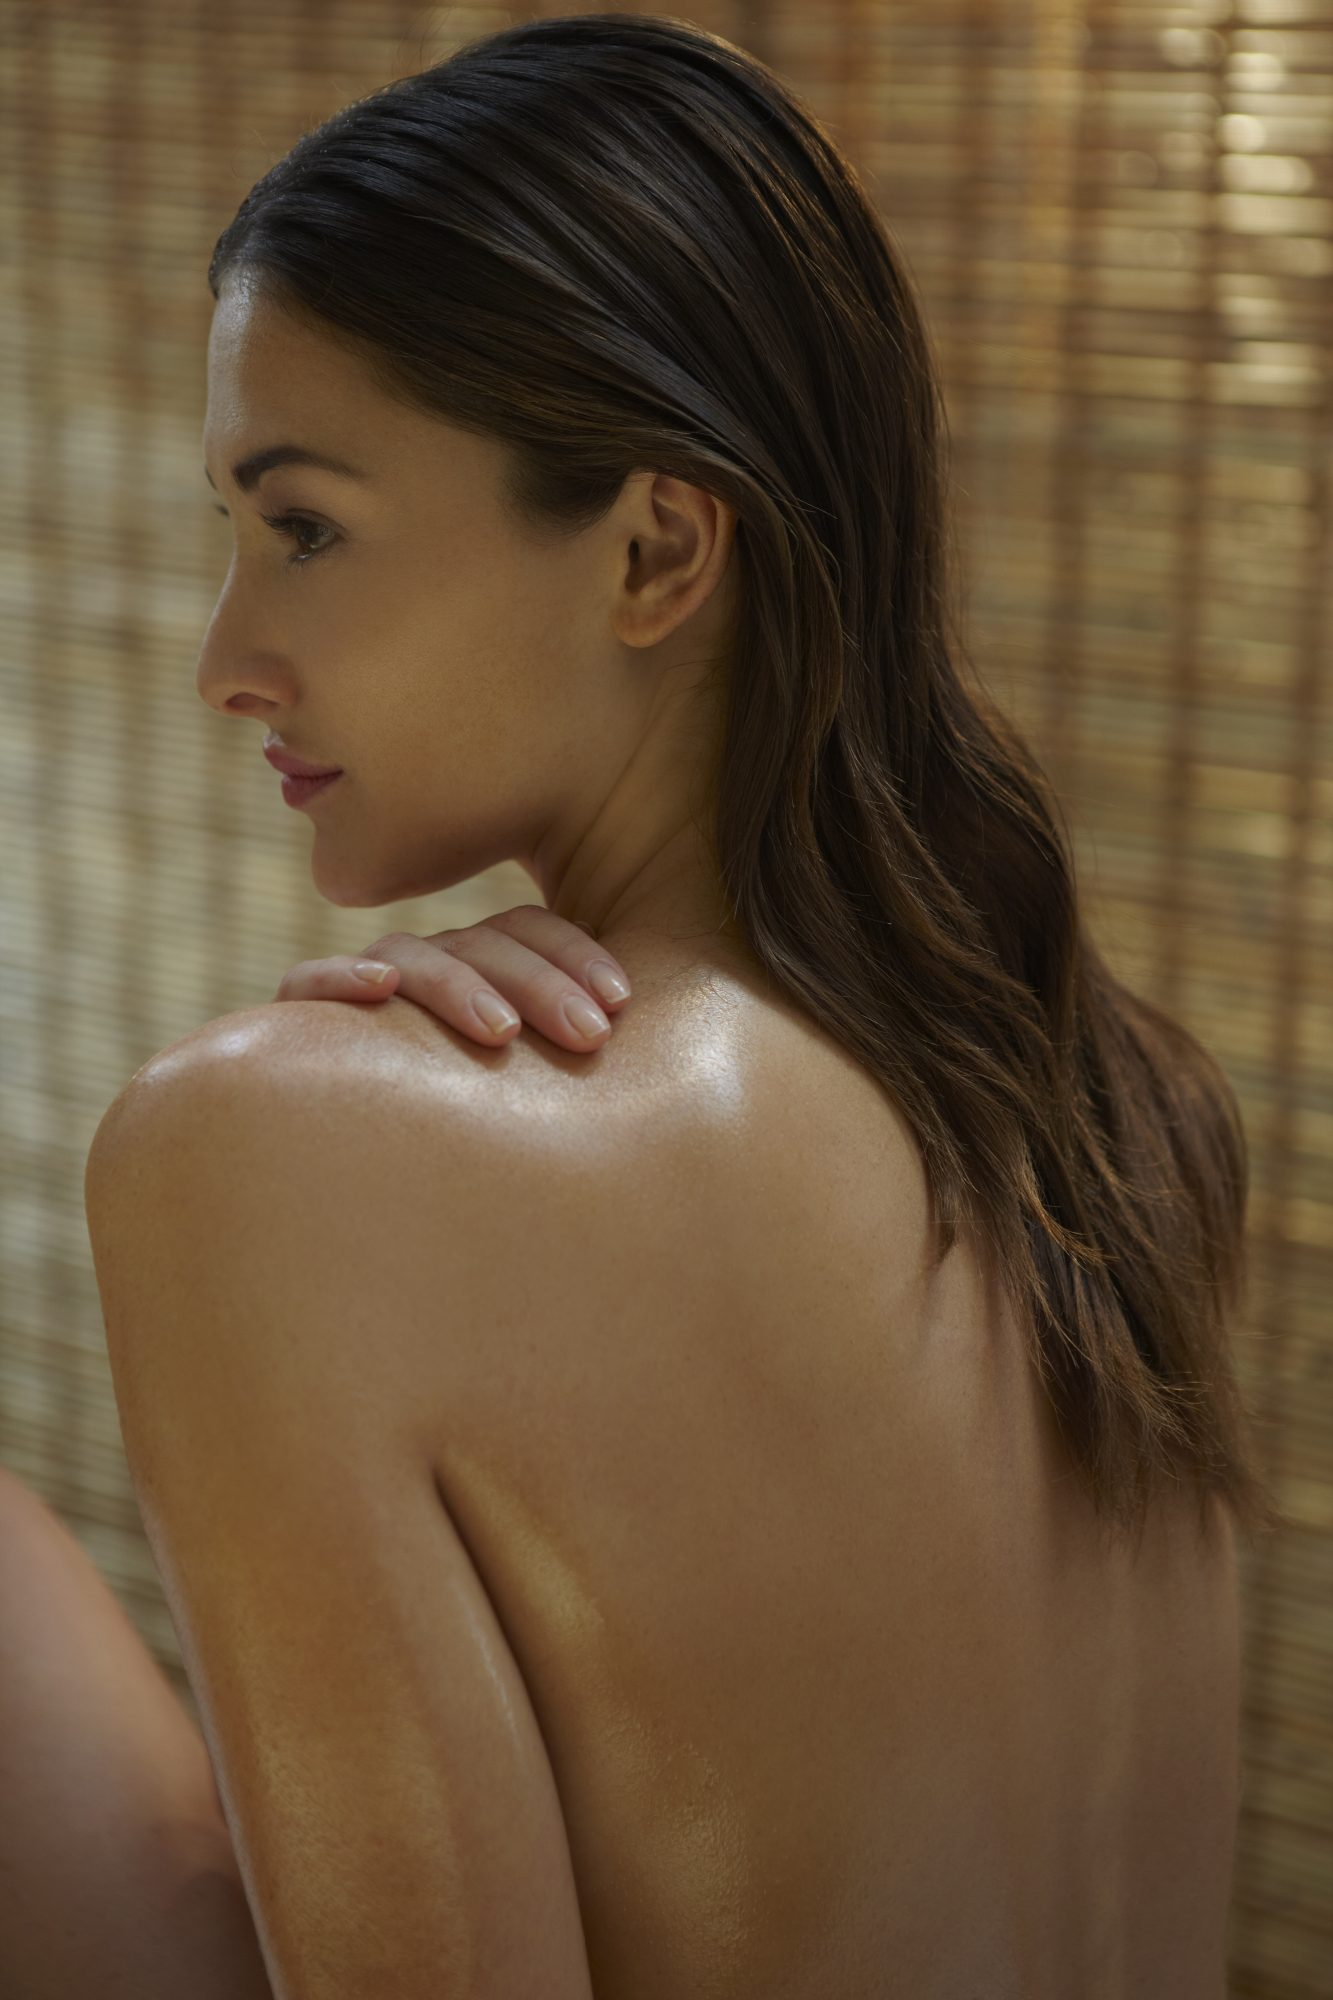 7 Things Every Woman Should Know About Her Skin